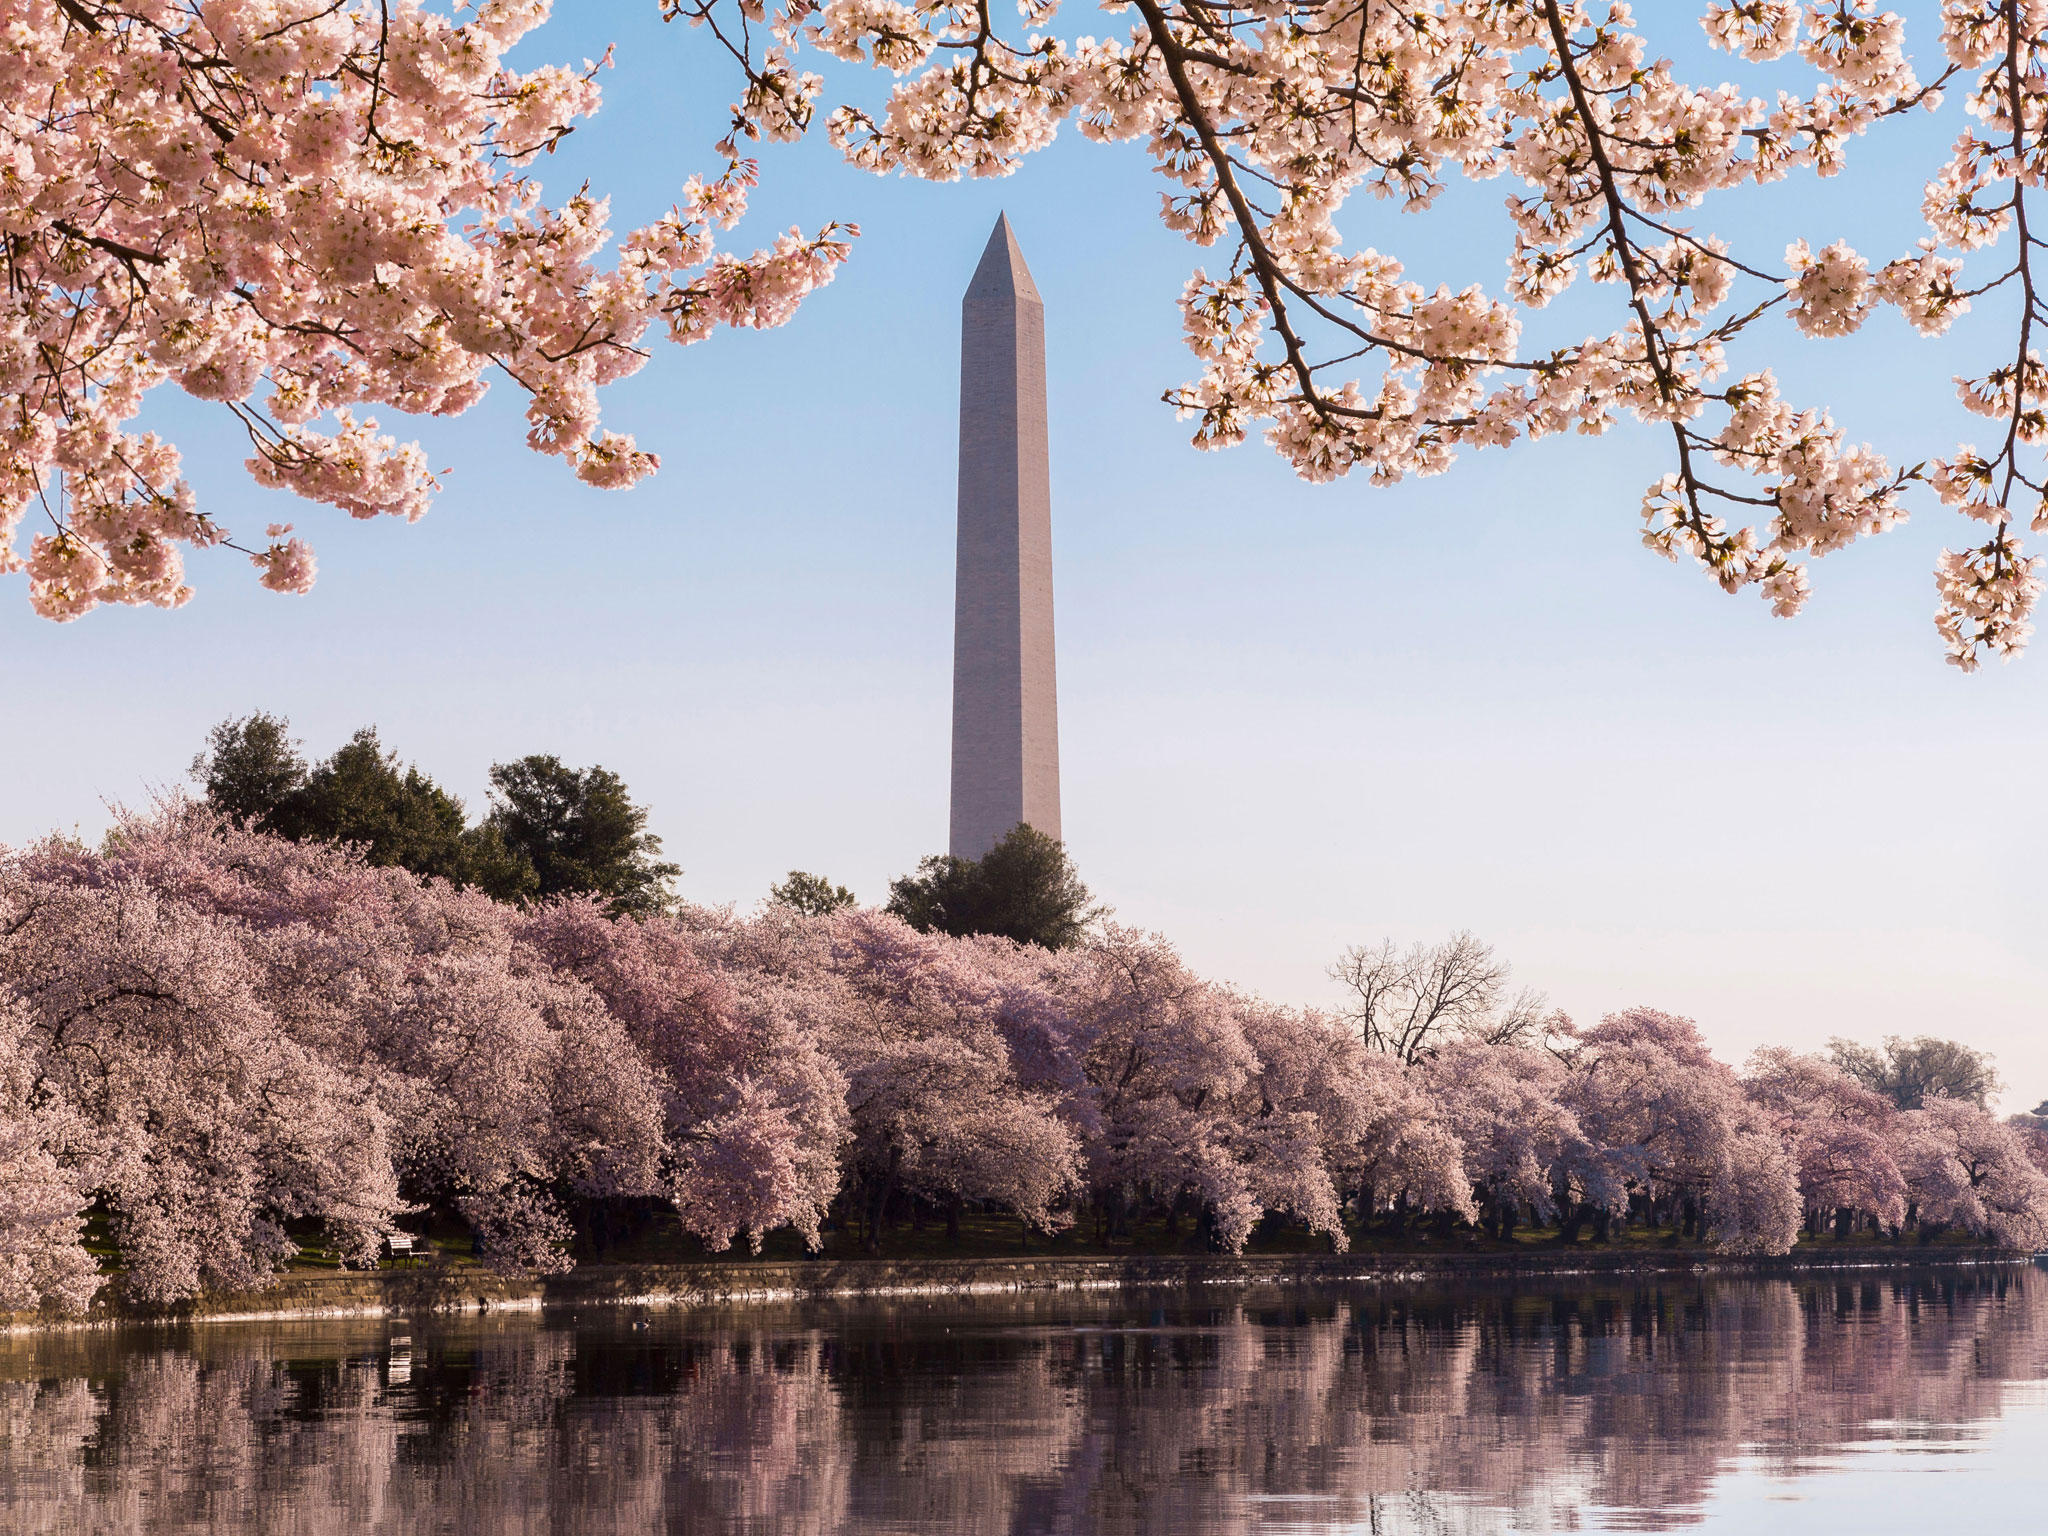 From $106Visit National Cherry Blossom festival in Washington DC. @ Hilton Hotels